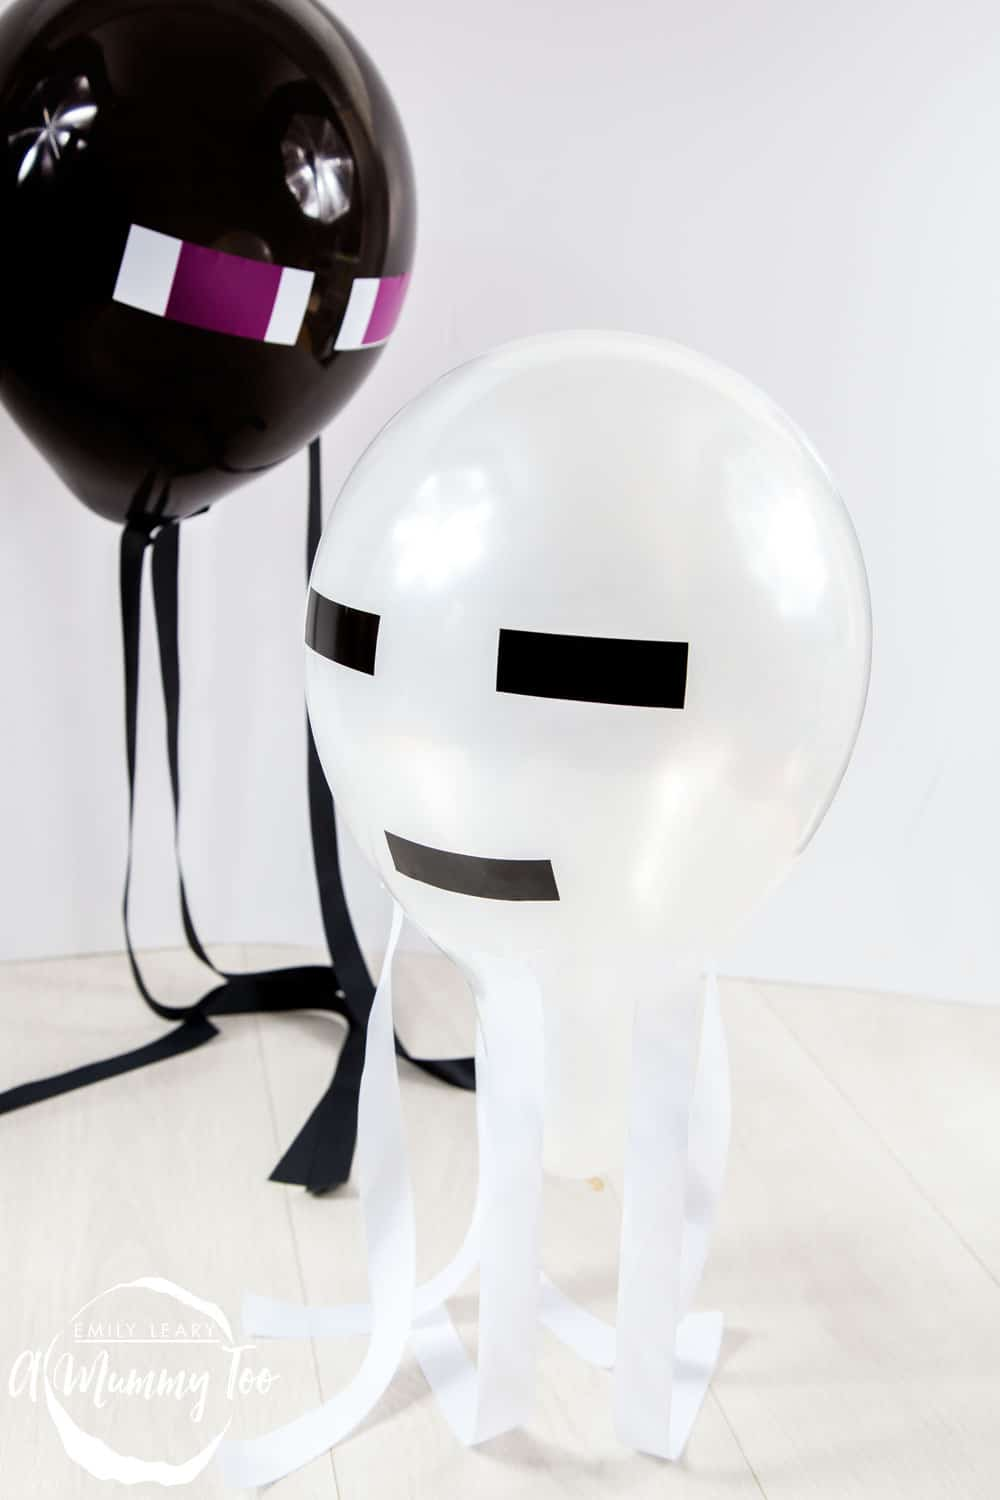 Front angle shot of black and white minecraft balloons with amummytoo logo in the lower-left corner